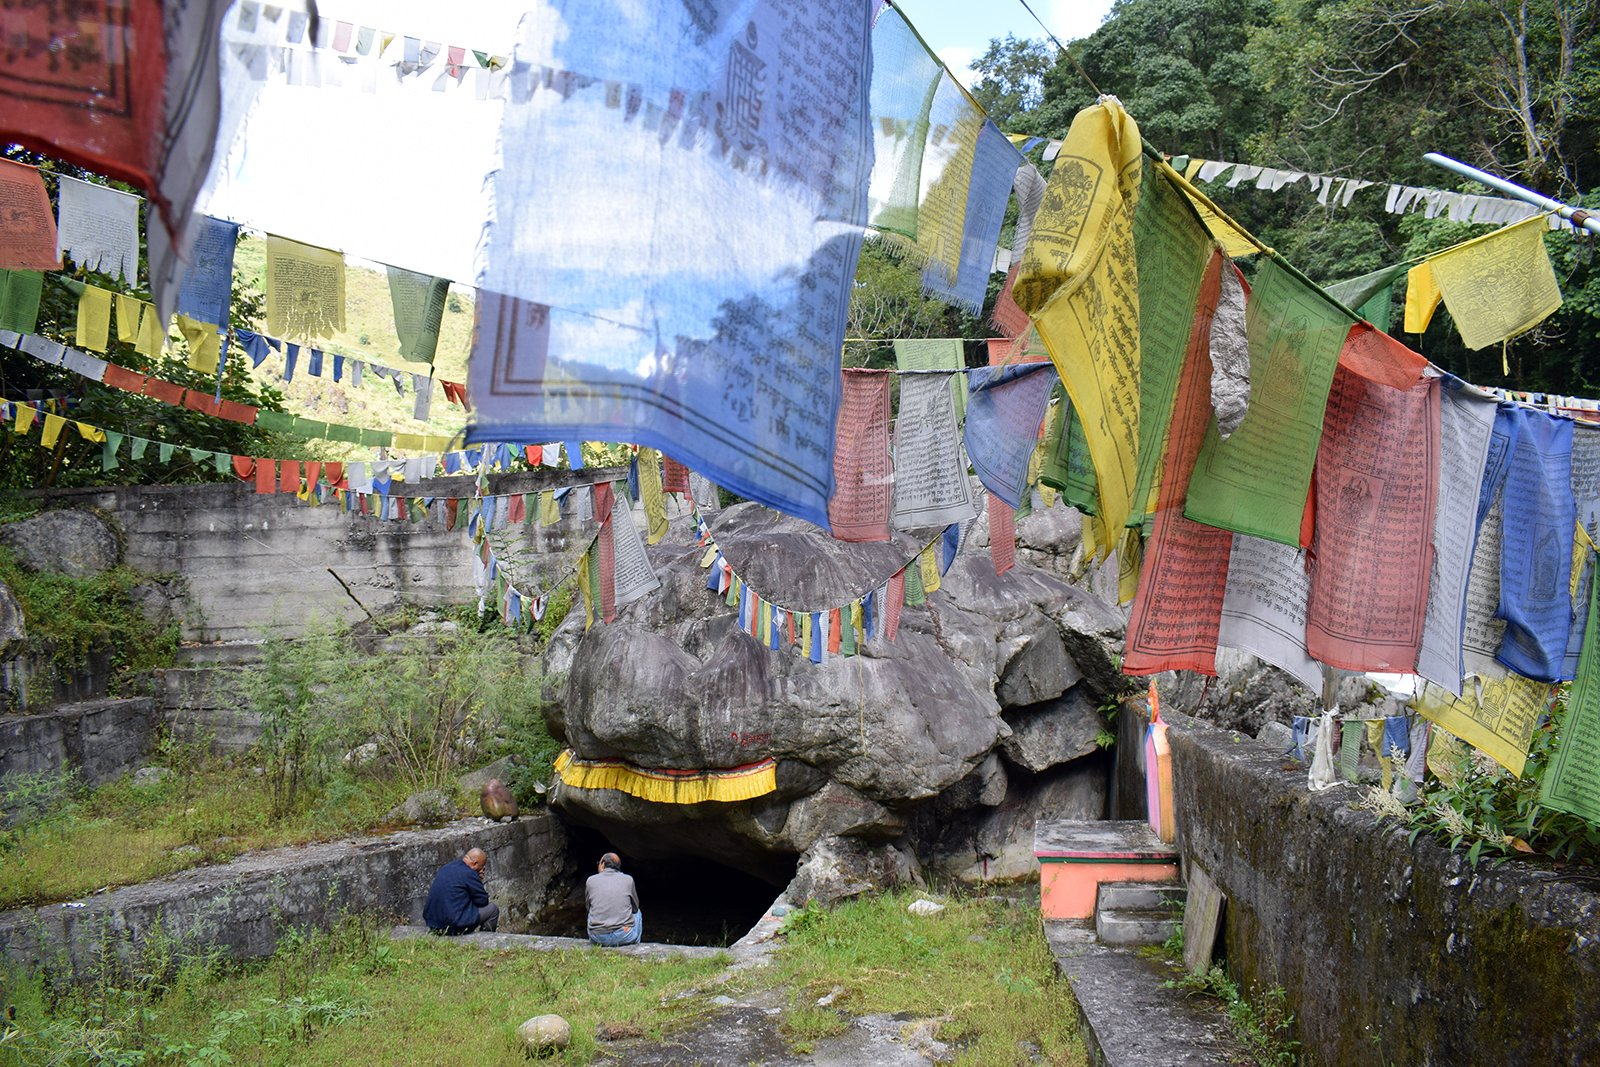 Indigenous Monpas are worried that the rock cave where Tantric Buddhism mystic Guru Padmasambhava meditated will be lost if the hydropower projects take off in Tawang district in Arunachal Pradesh, India. RNS photo by Priyadarshini Sen